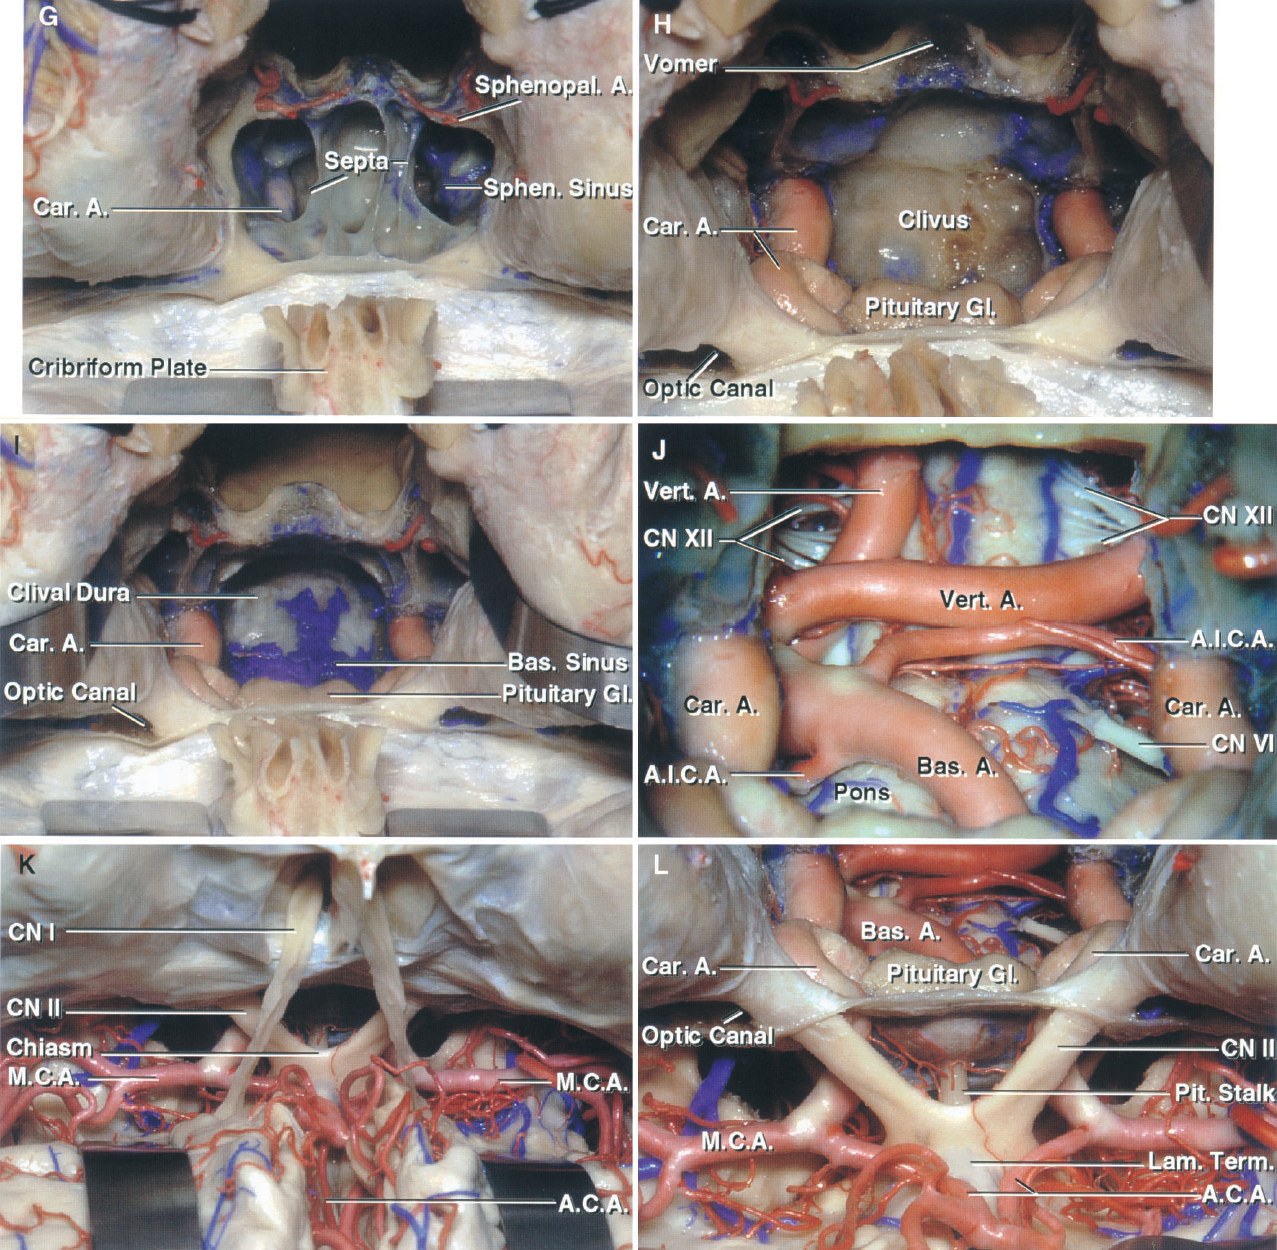 FIGURE 6.19. G–L. Relationships in the transbasal and extended frontal approaches. G, the sphenoid sinus has been opened to expose the septa within the sinus. The sphenopalatine arteries cross the anterior face of the sphenoid. H, the septa within the sphenoid sinus, the sellar floor, and the lateral sinus wall have been removed to expose the cavernous carotid arteries, pituitary gland, and optic canals. I, the clivus has been opened to expose the dura facing the brainstem. The basilar sinus, which interconnects the posterior parts of the cavernous sinus, is situated between the layers of dura on the upper clivus. J, the clivus has been opened to expose the tortuous vertebral arteries, which join to form the basilar artery at the left lateral margin of the clival opening. Both AICA origins are exposed. A vein splits the right abducens nerve into two bundles adjacent to the brainstem. K, the frontal dura has been opened and the frontal lobes elevated to expose the olfactory and optic nerves, the internal carotid, and the anterior and middle cerebral arteries. L, enlarged view. The subfrontal and clival openings are separated by the sella and pituitary gland. The lateral limit of the clival exposure is defined by the internal carotid arteries and optic nerves. The lamina terminalis is exposed above the optic chiasm.